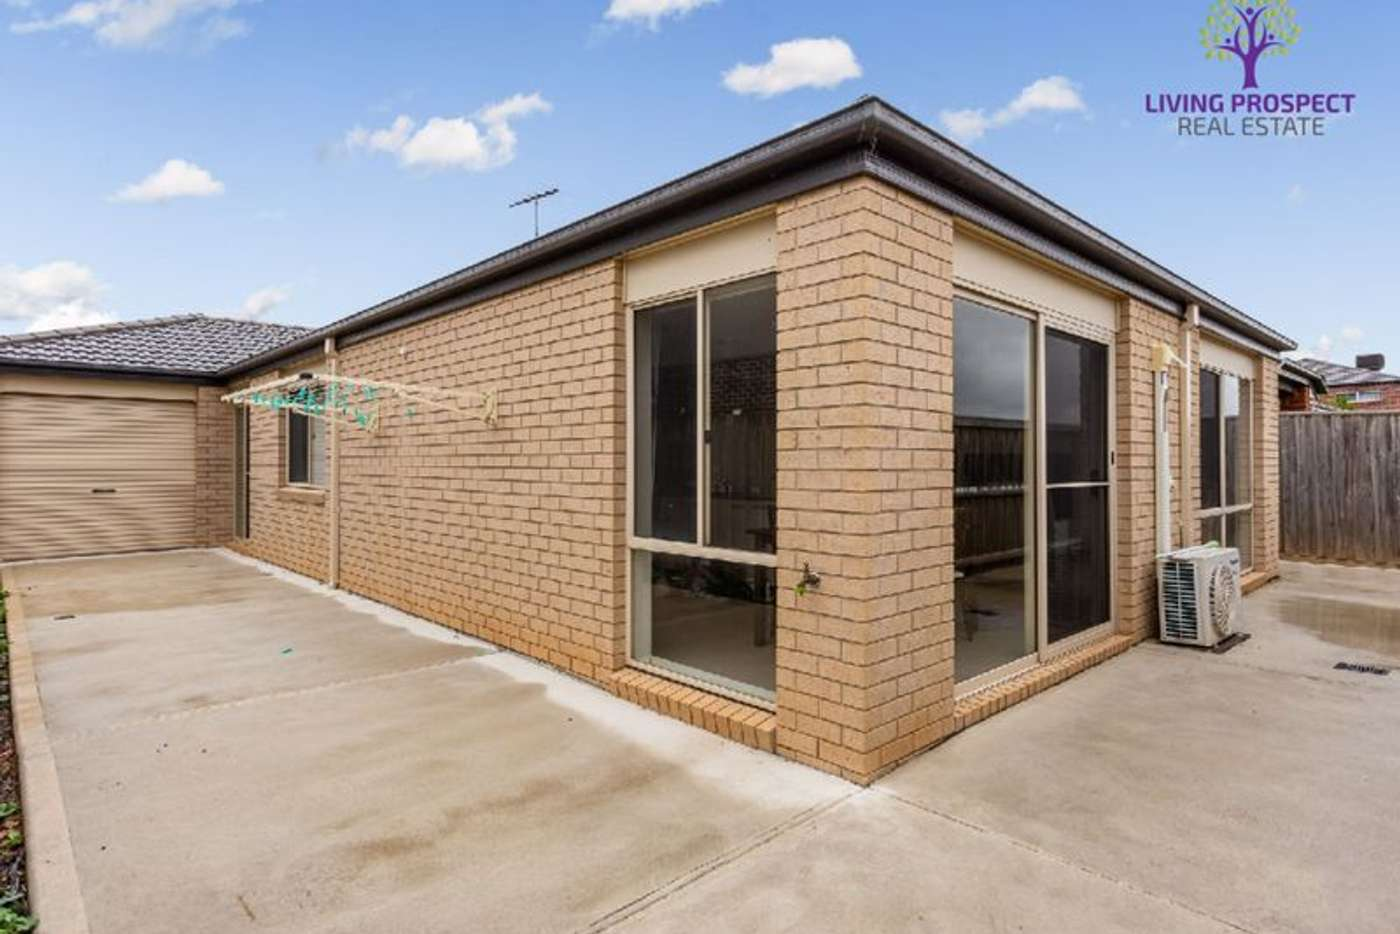 Seventh view of Homely house listing, 23 Tropic Circuit, Point Cook VIC 3030